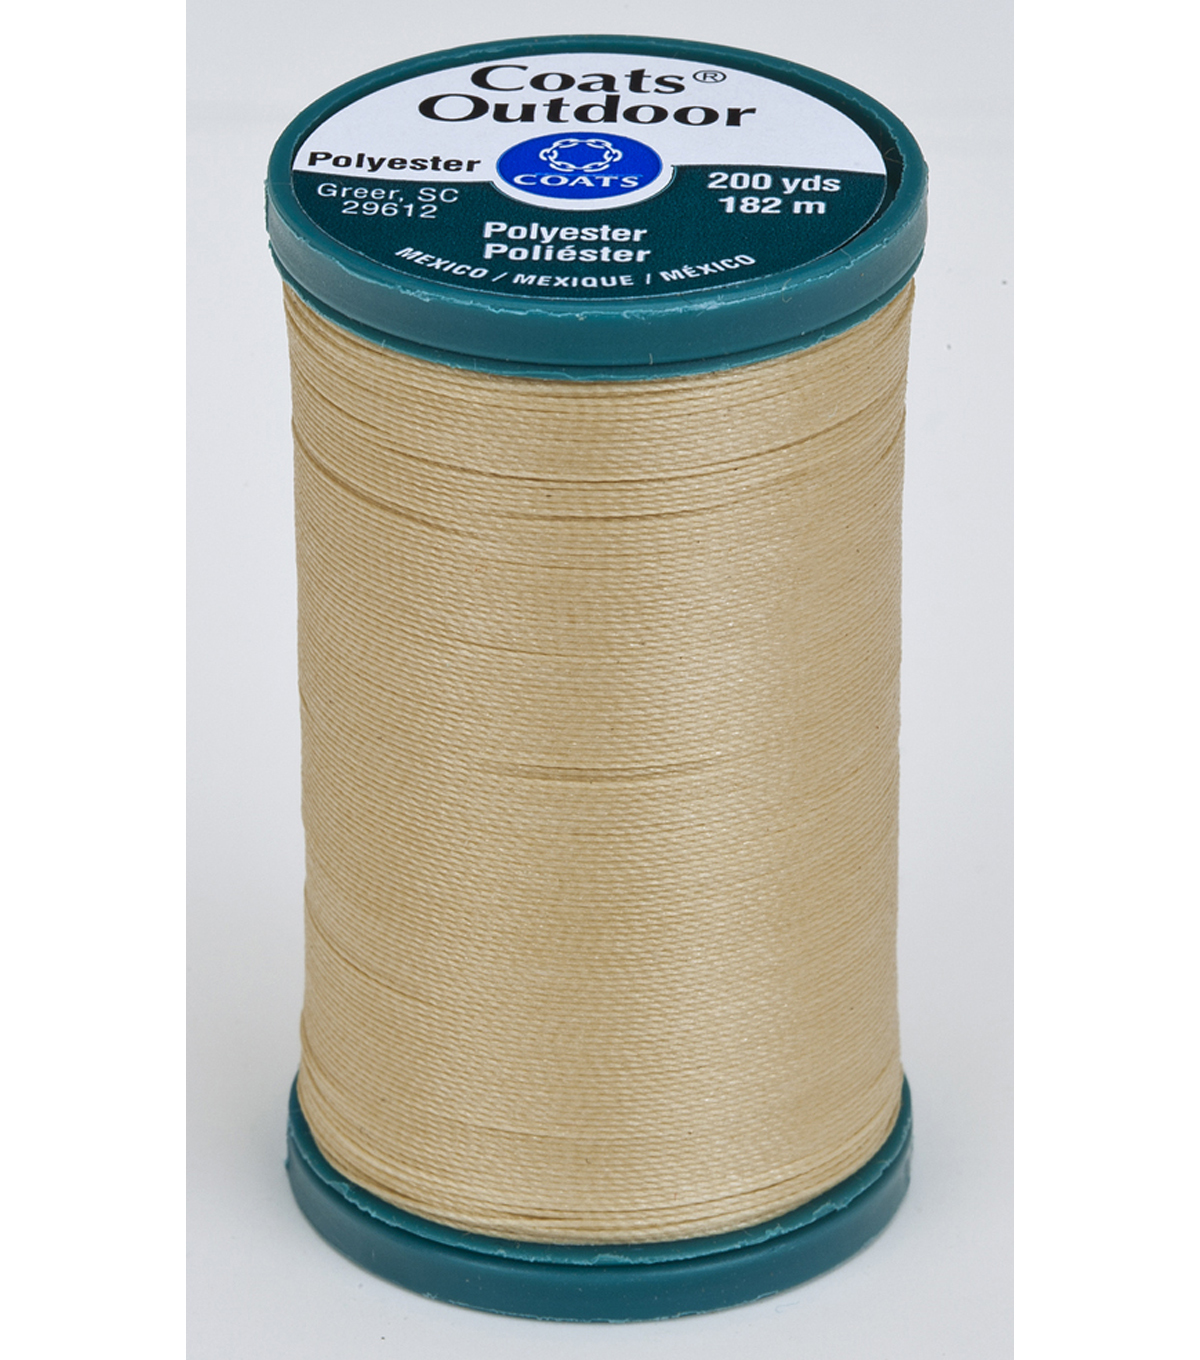 Coats & Clark Outdoor 200yd Thread, Coats Outdoor 200yd Buff